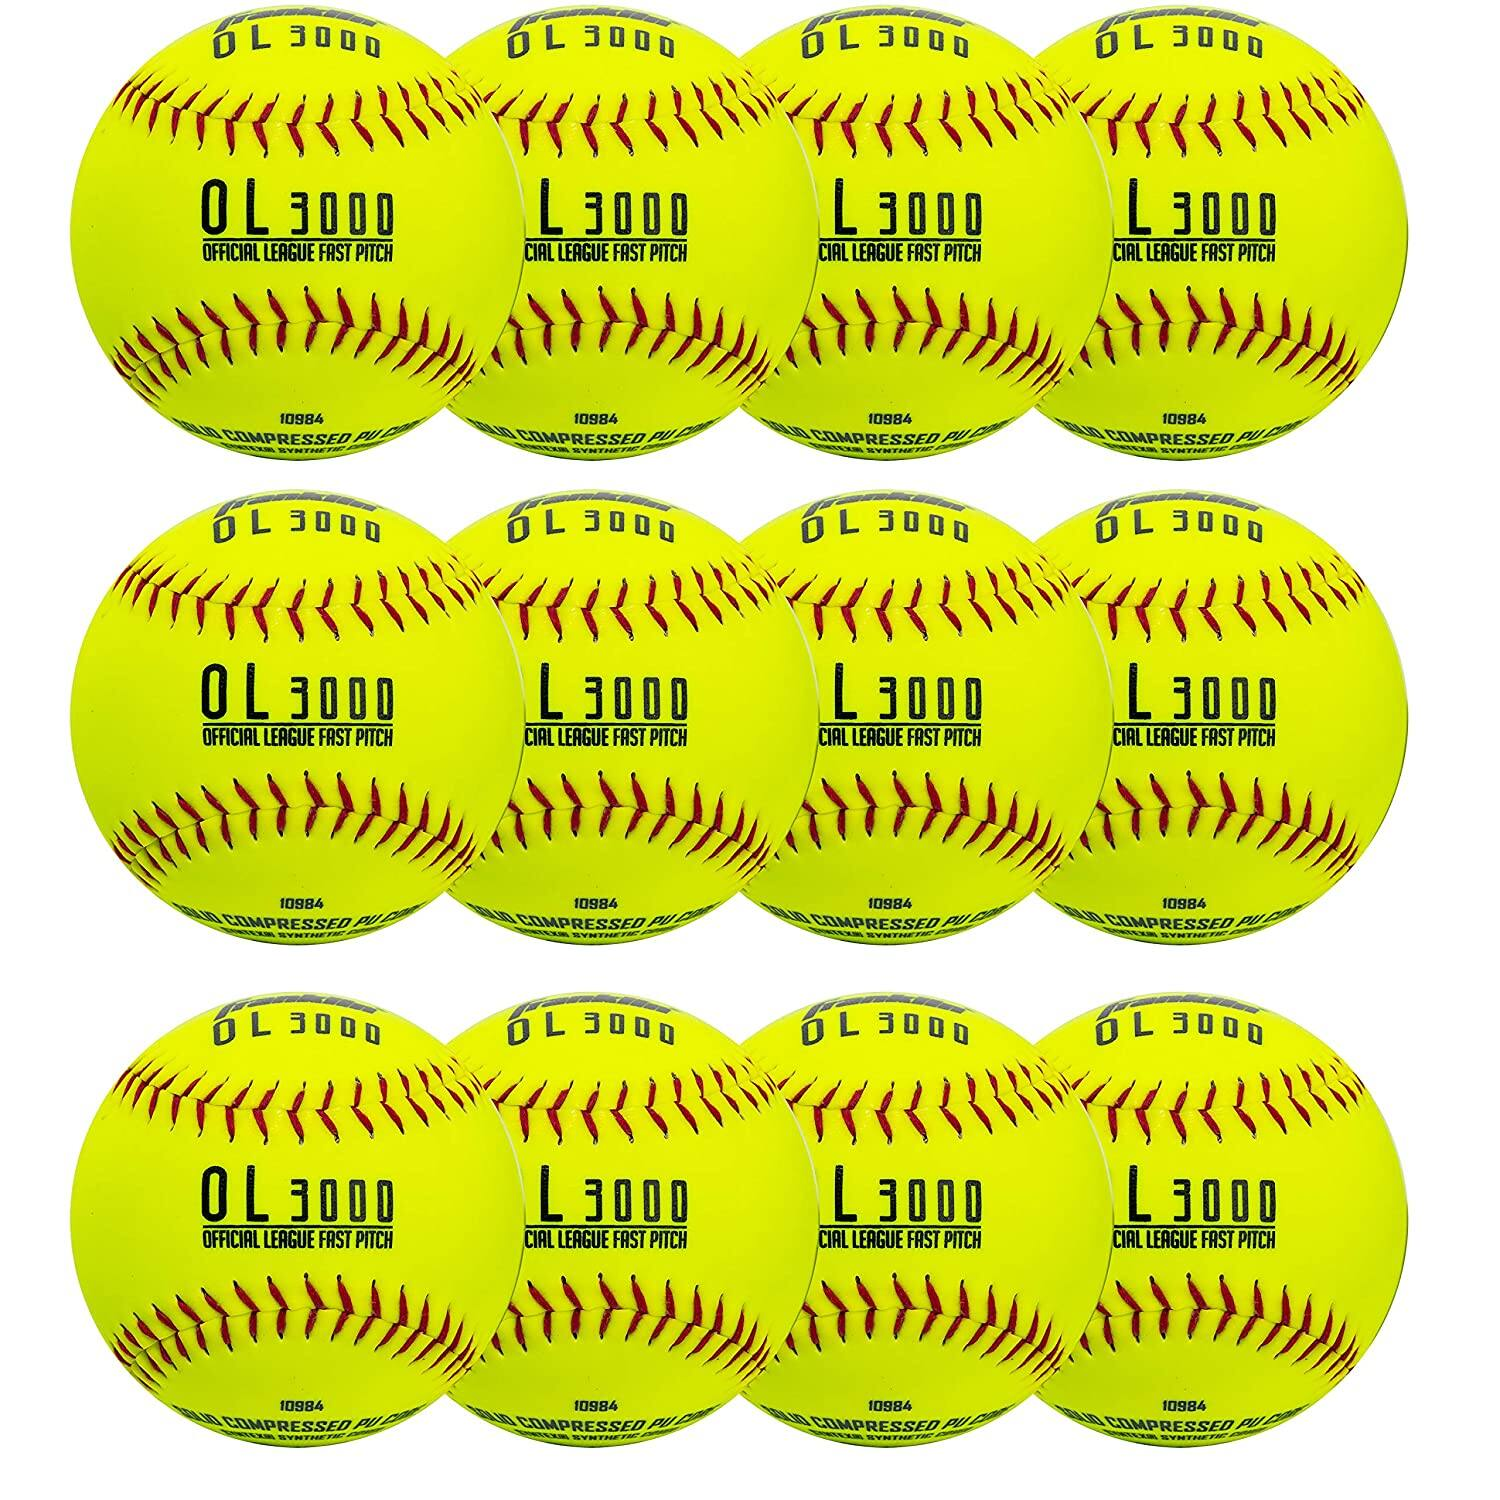 """12-Pack Franklin Sports Official 12"""" Fastpitch Softballs - $26.99 @ Amazon + FS"""